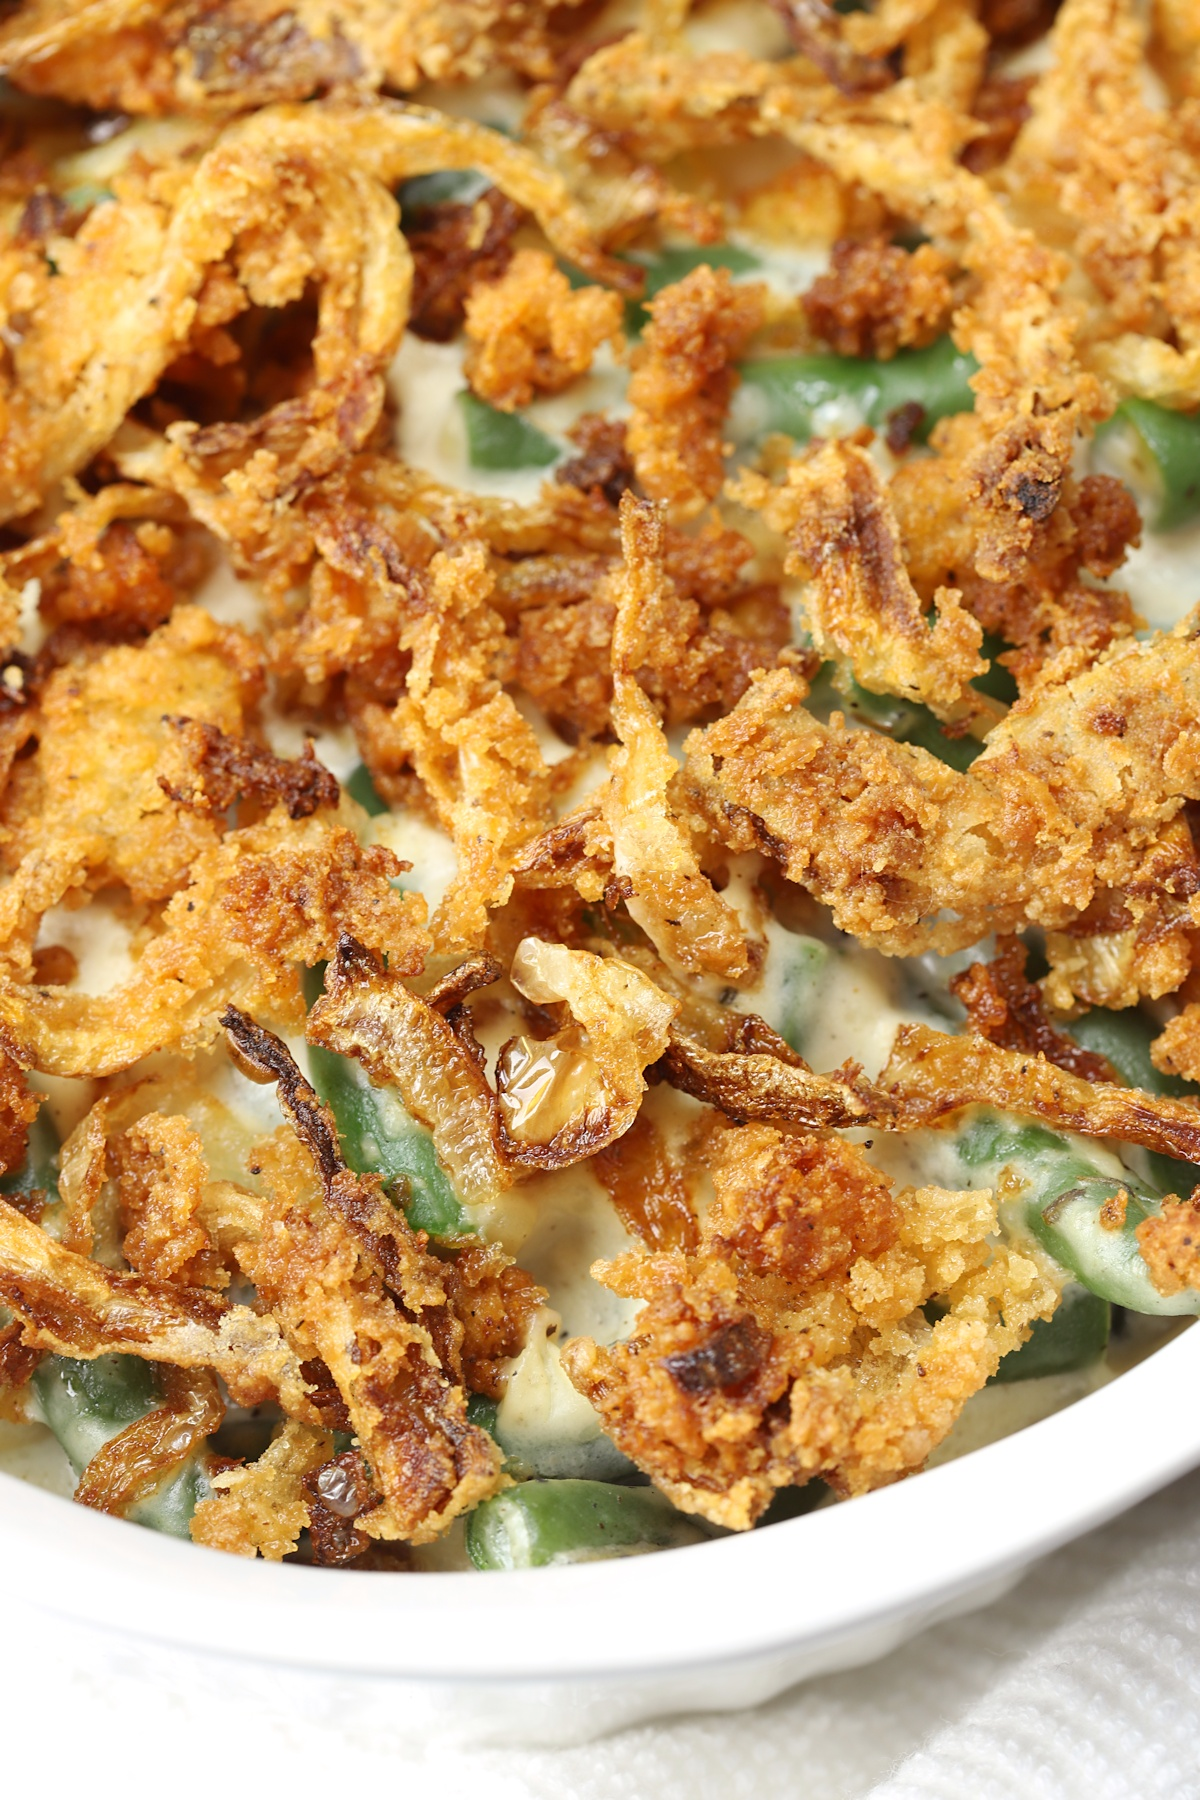 Close up of fried onions on top of green bean casserole.